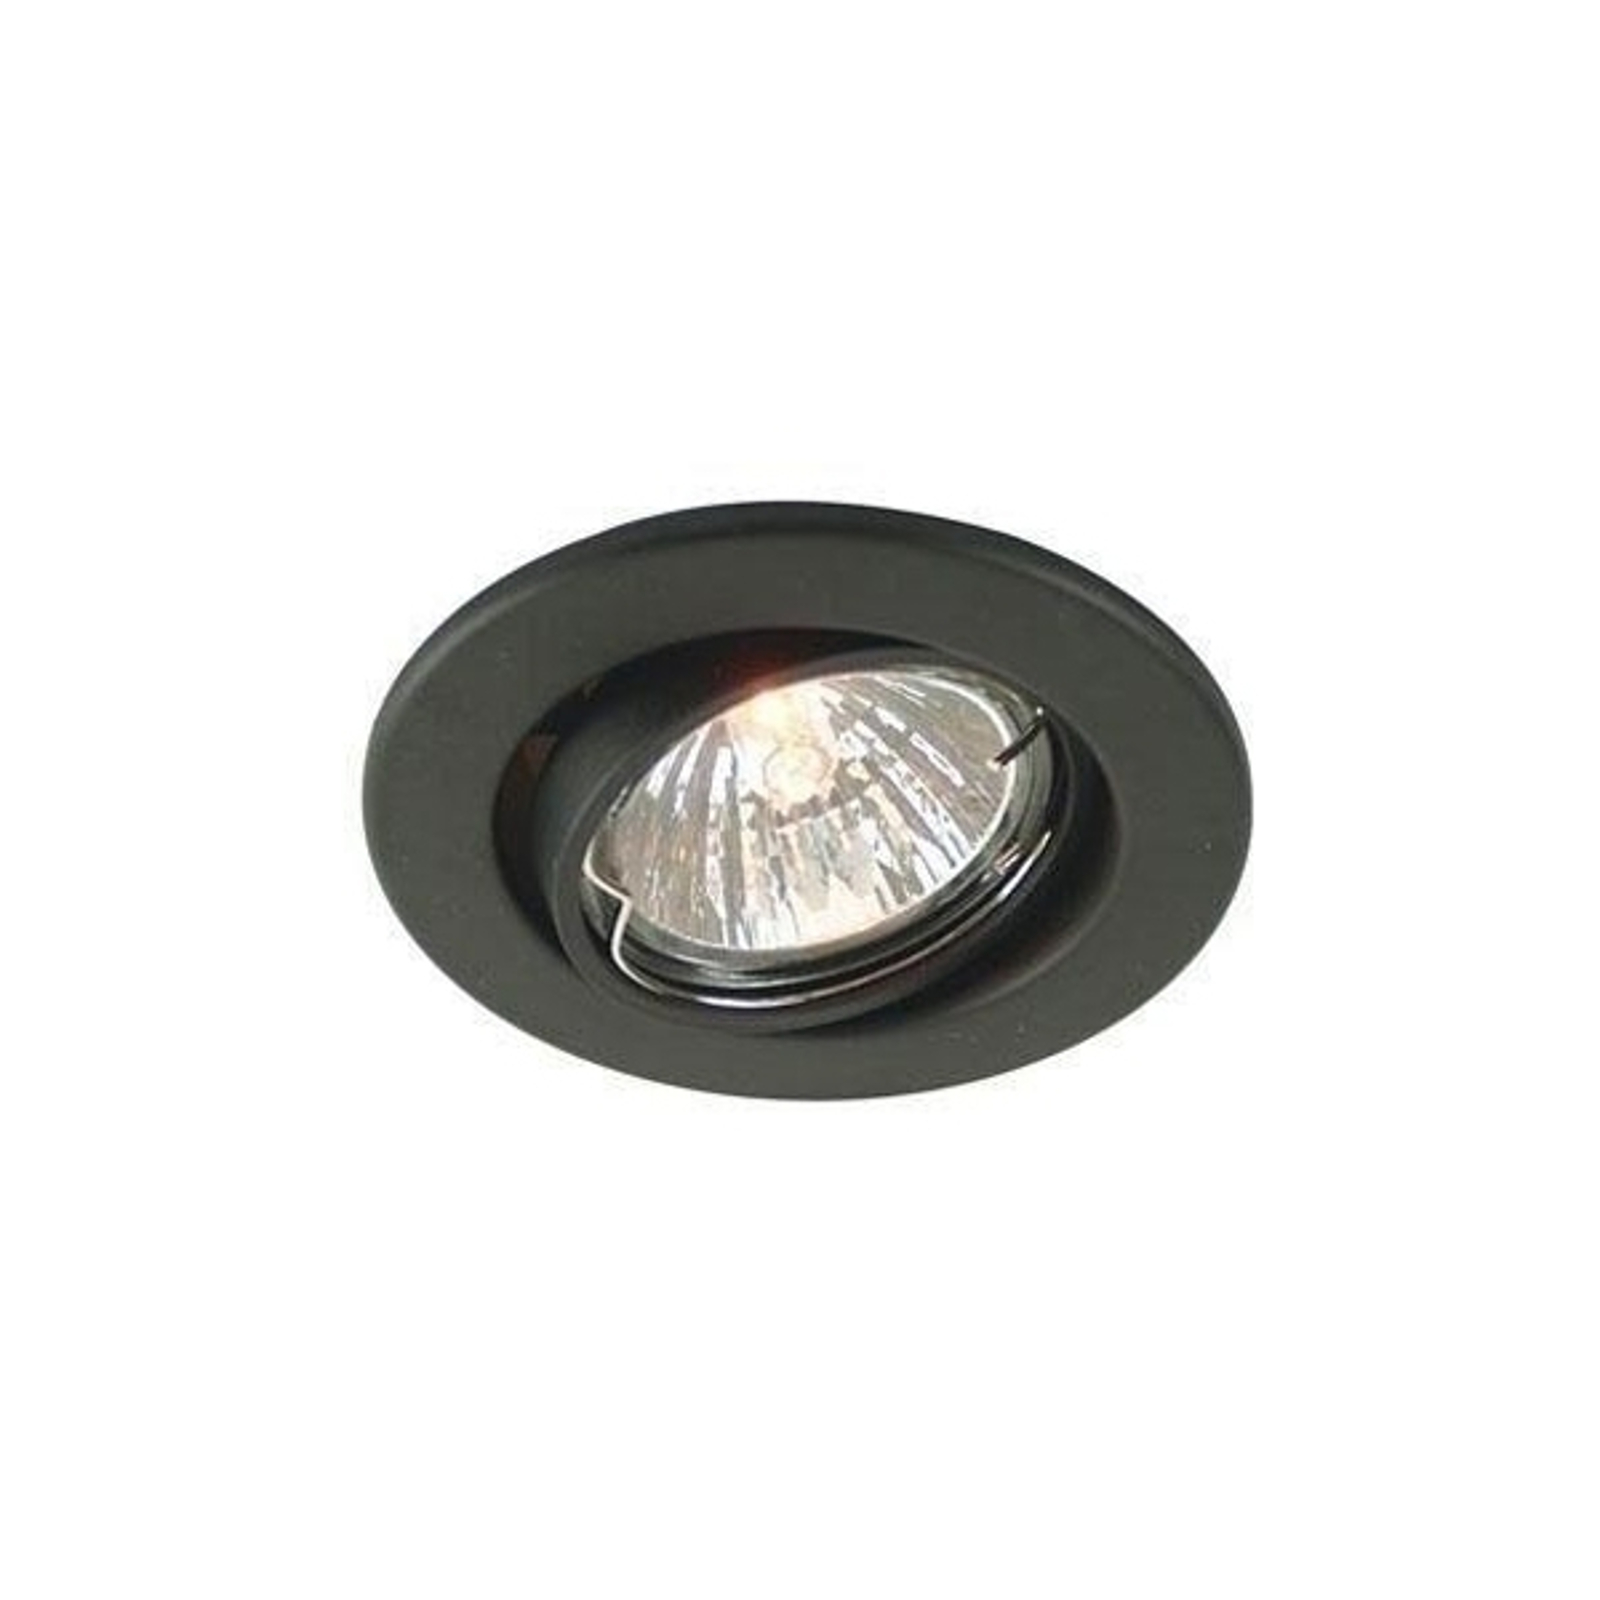 pivotable low-voltage sixty-eight recessed light_2501585_1